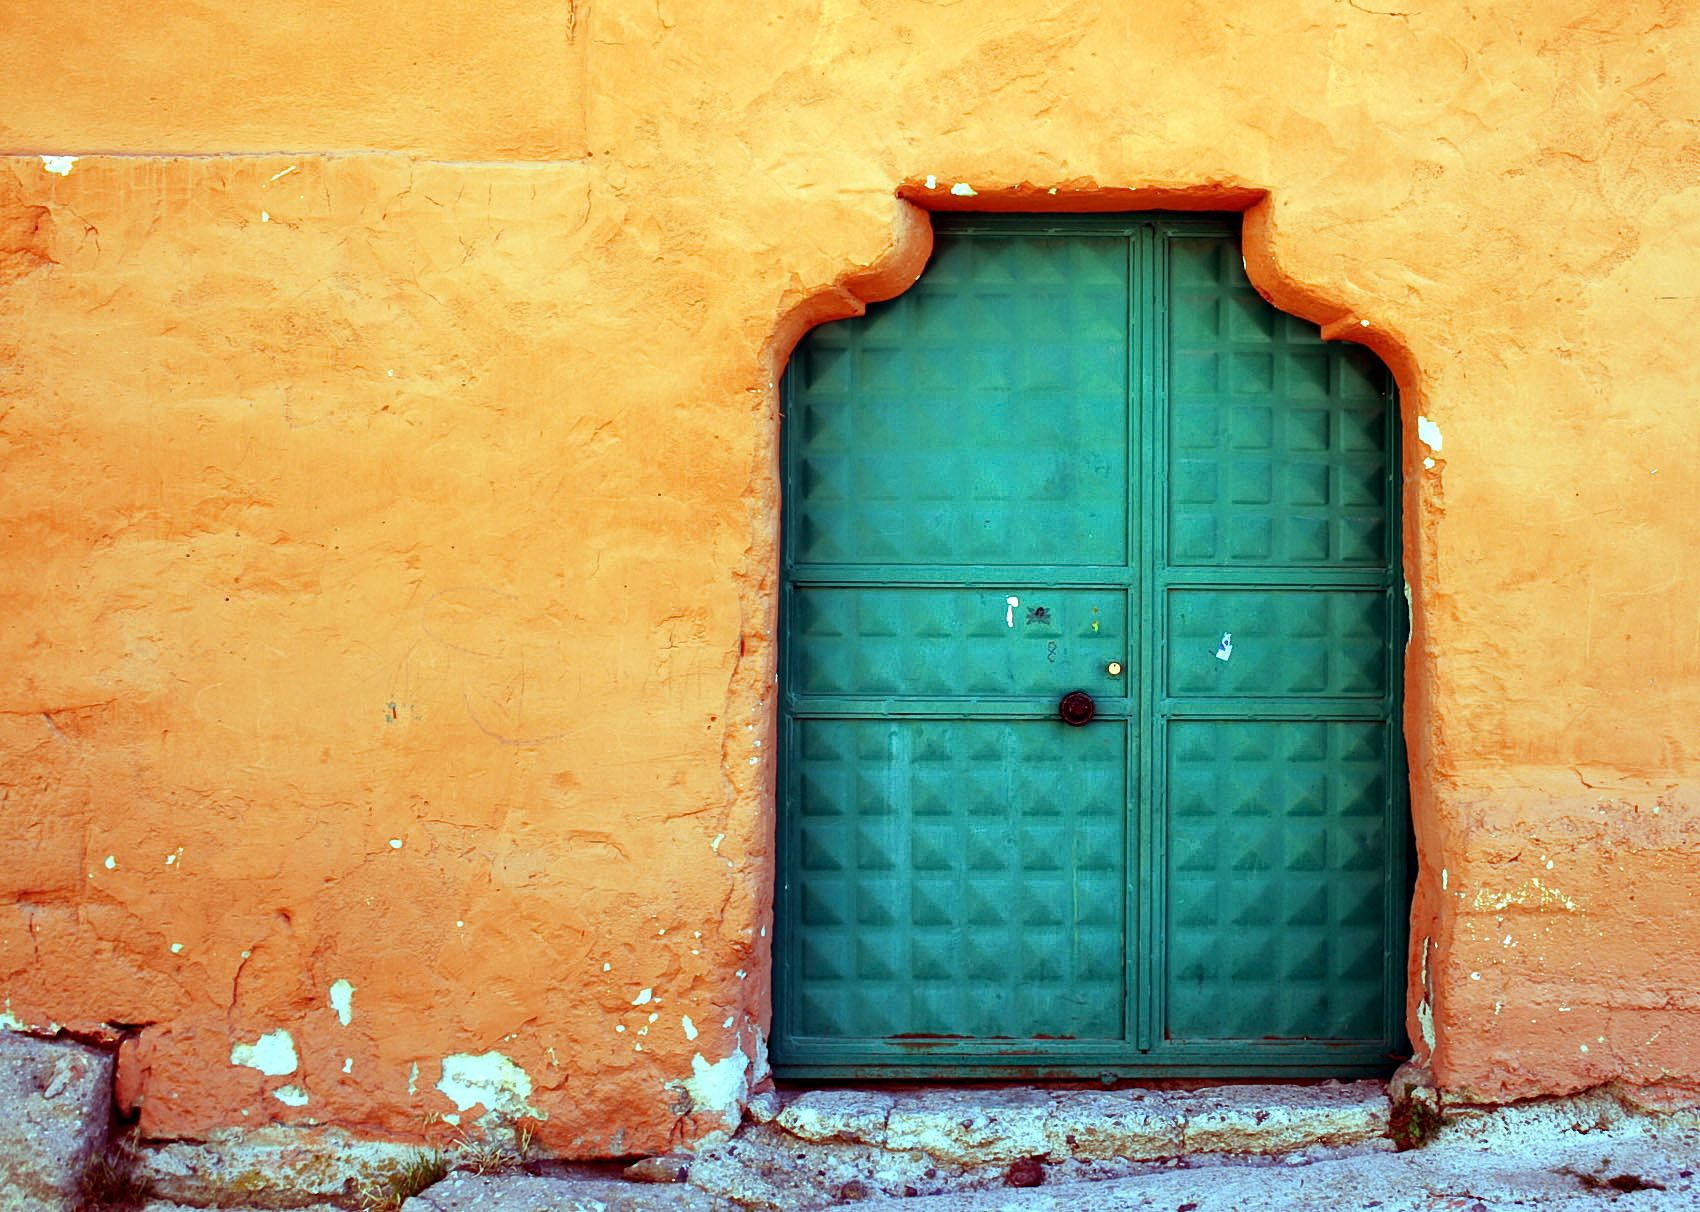 Textured Teal Door In Orange Facade Turquoise Dooraqua Doorcolored